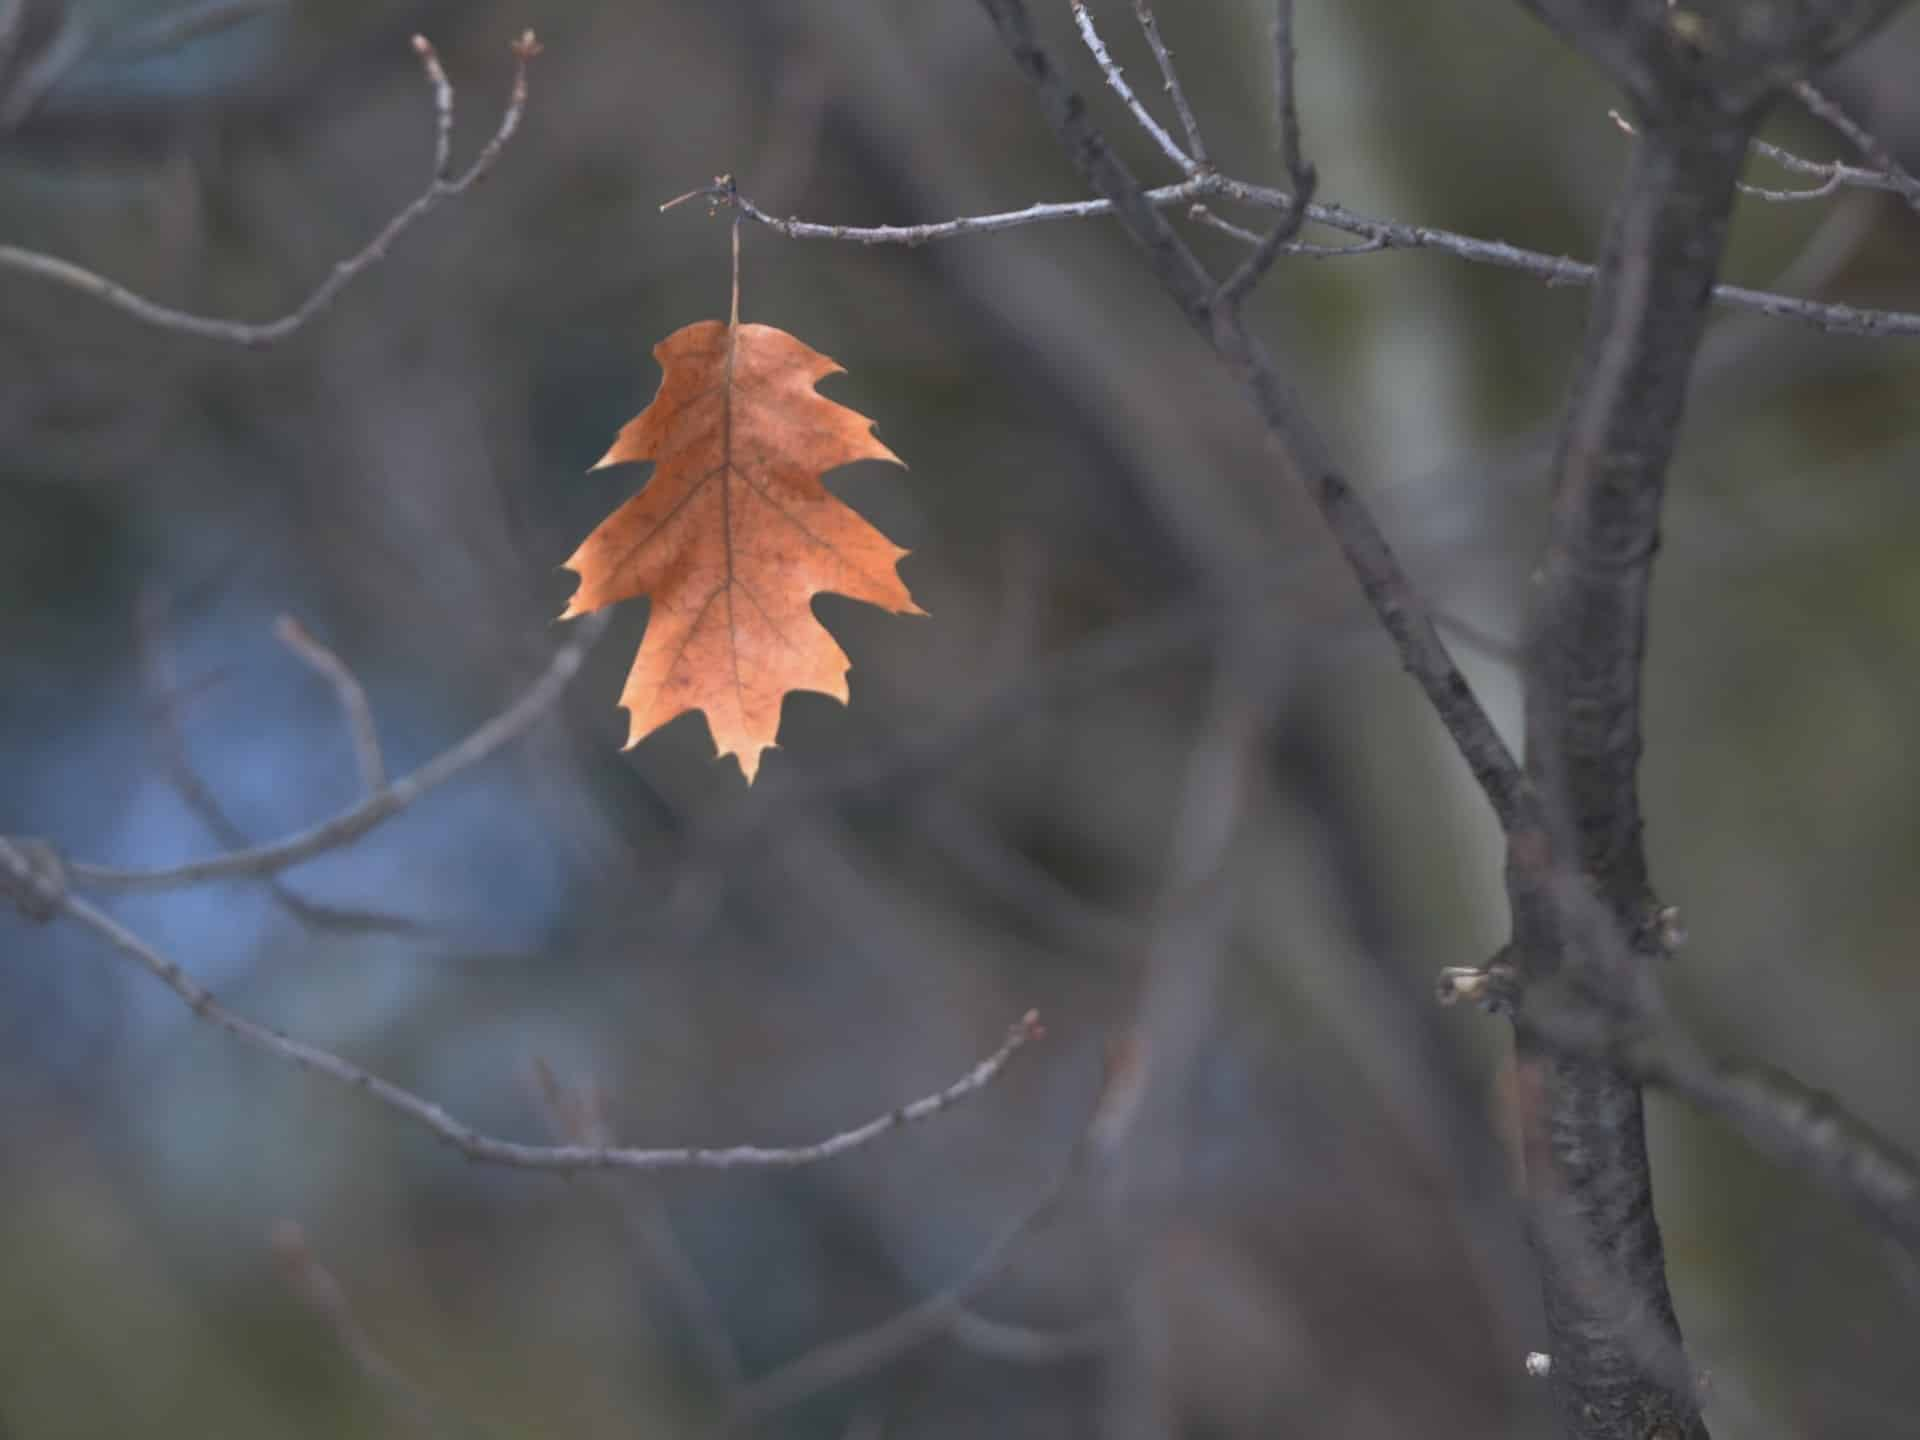 Last leaf on a tree